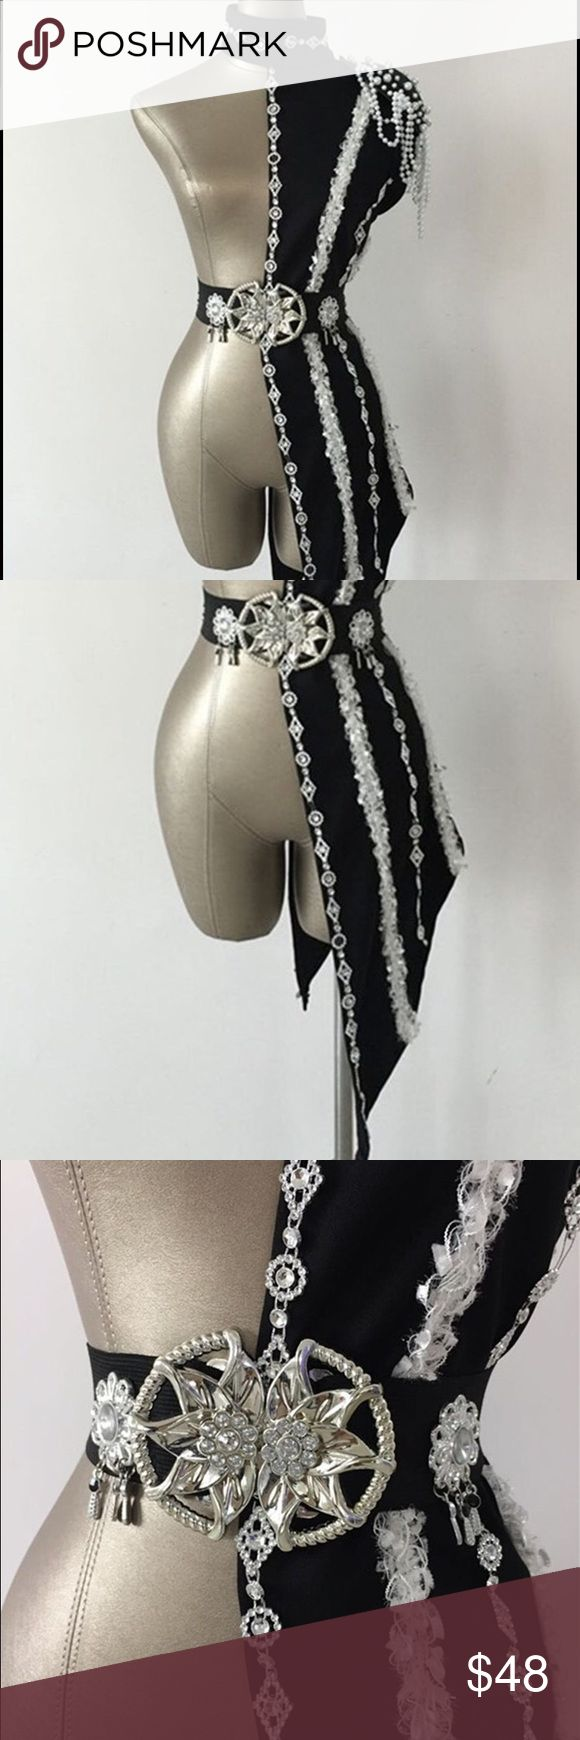 Rhinestone Lace Drum Major Dance Costume Sexy one side costume features lace and rhinestone. Pair with studded bra and hot shorts! Dresses Mini